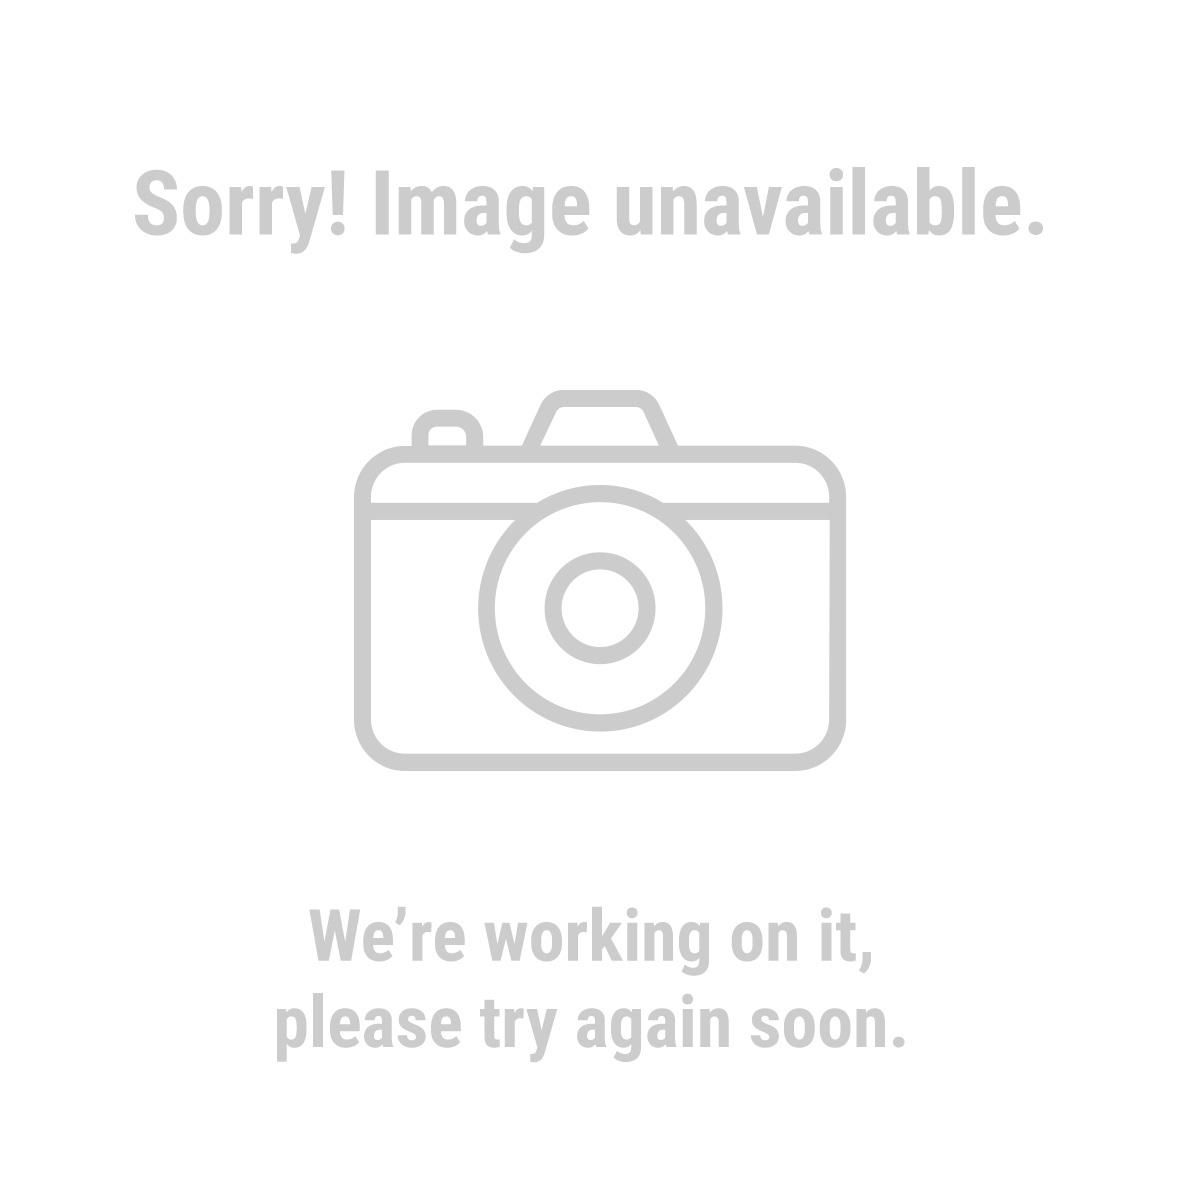 Cen-Tech 60695 High Resolution Digital Inspection Camera with Recorder